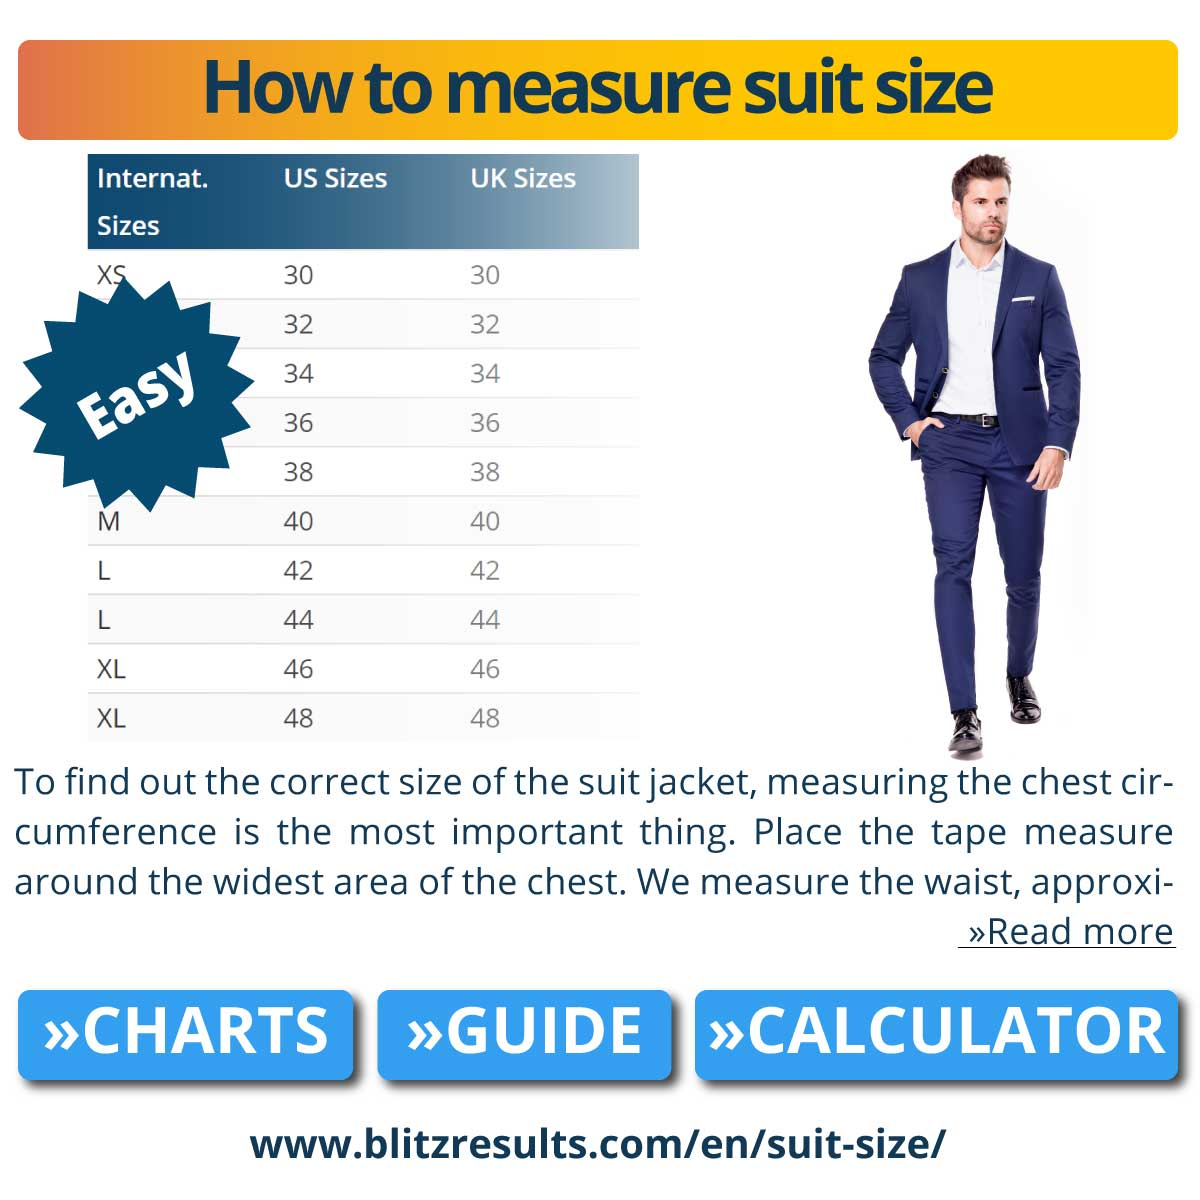 How to measure suit size